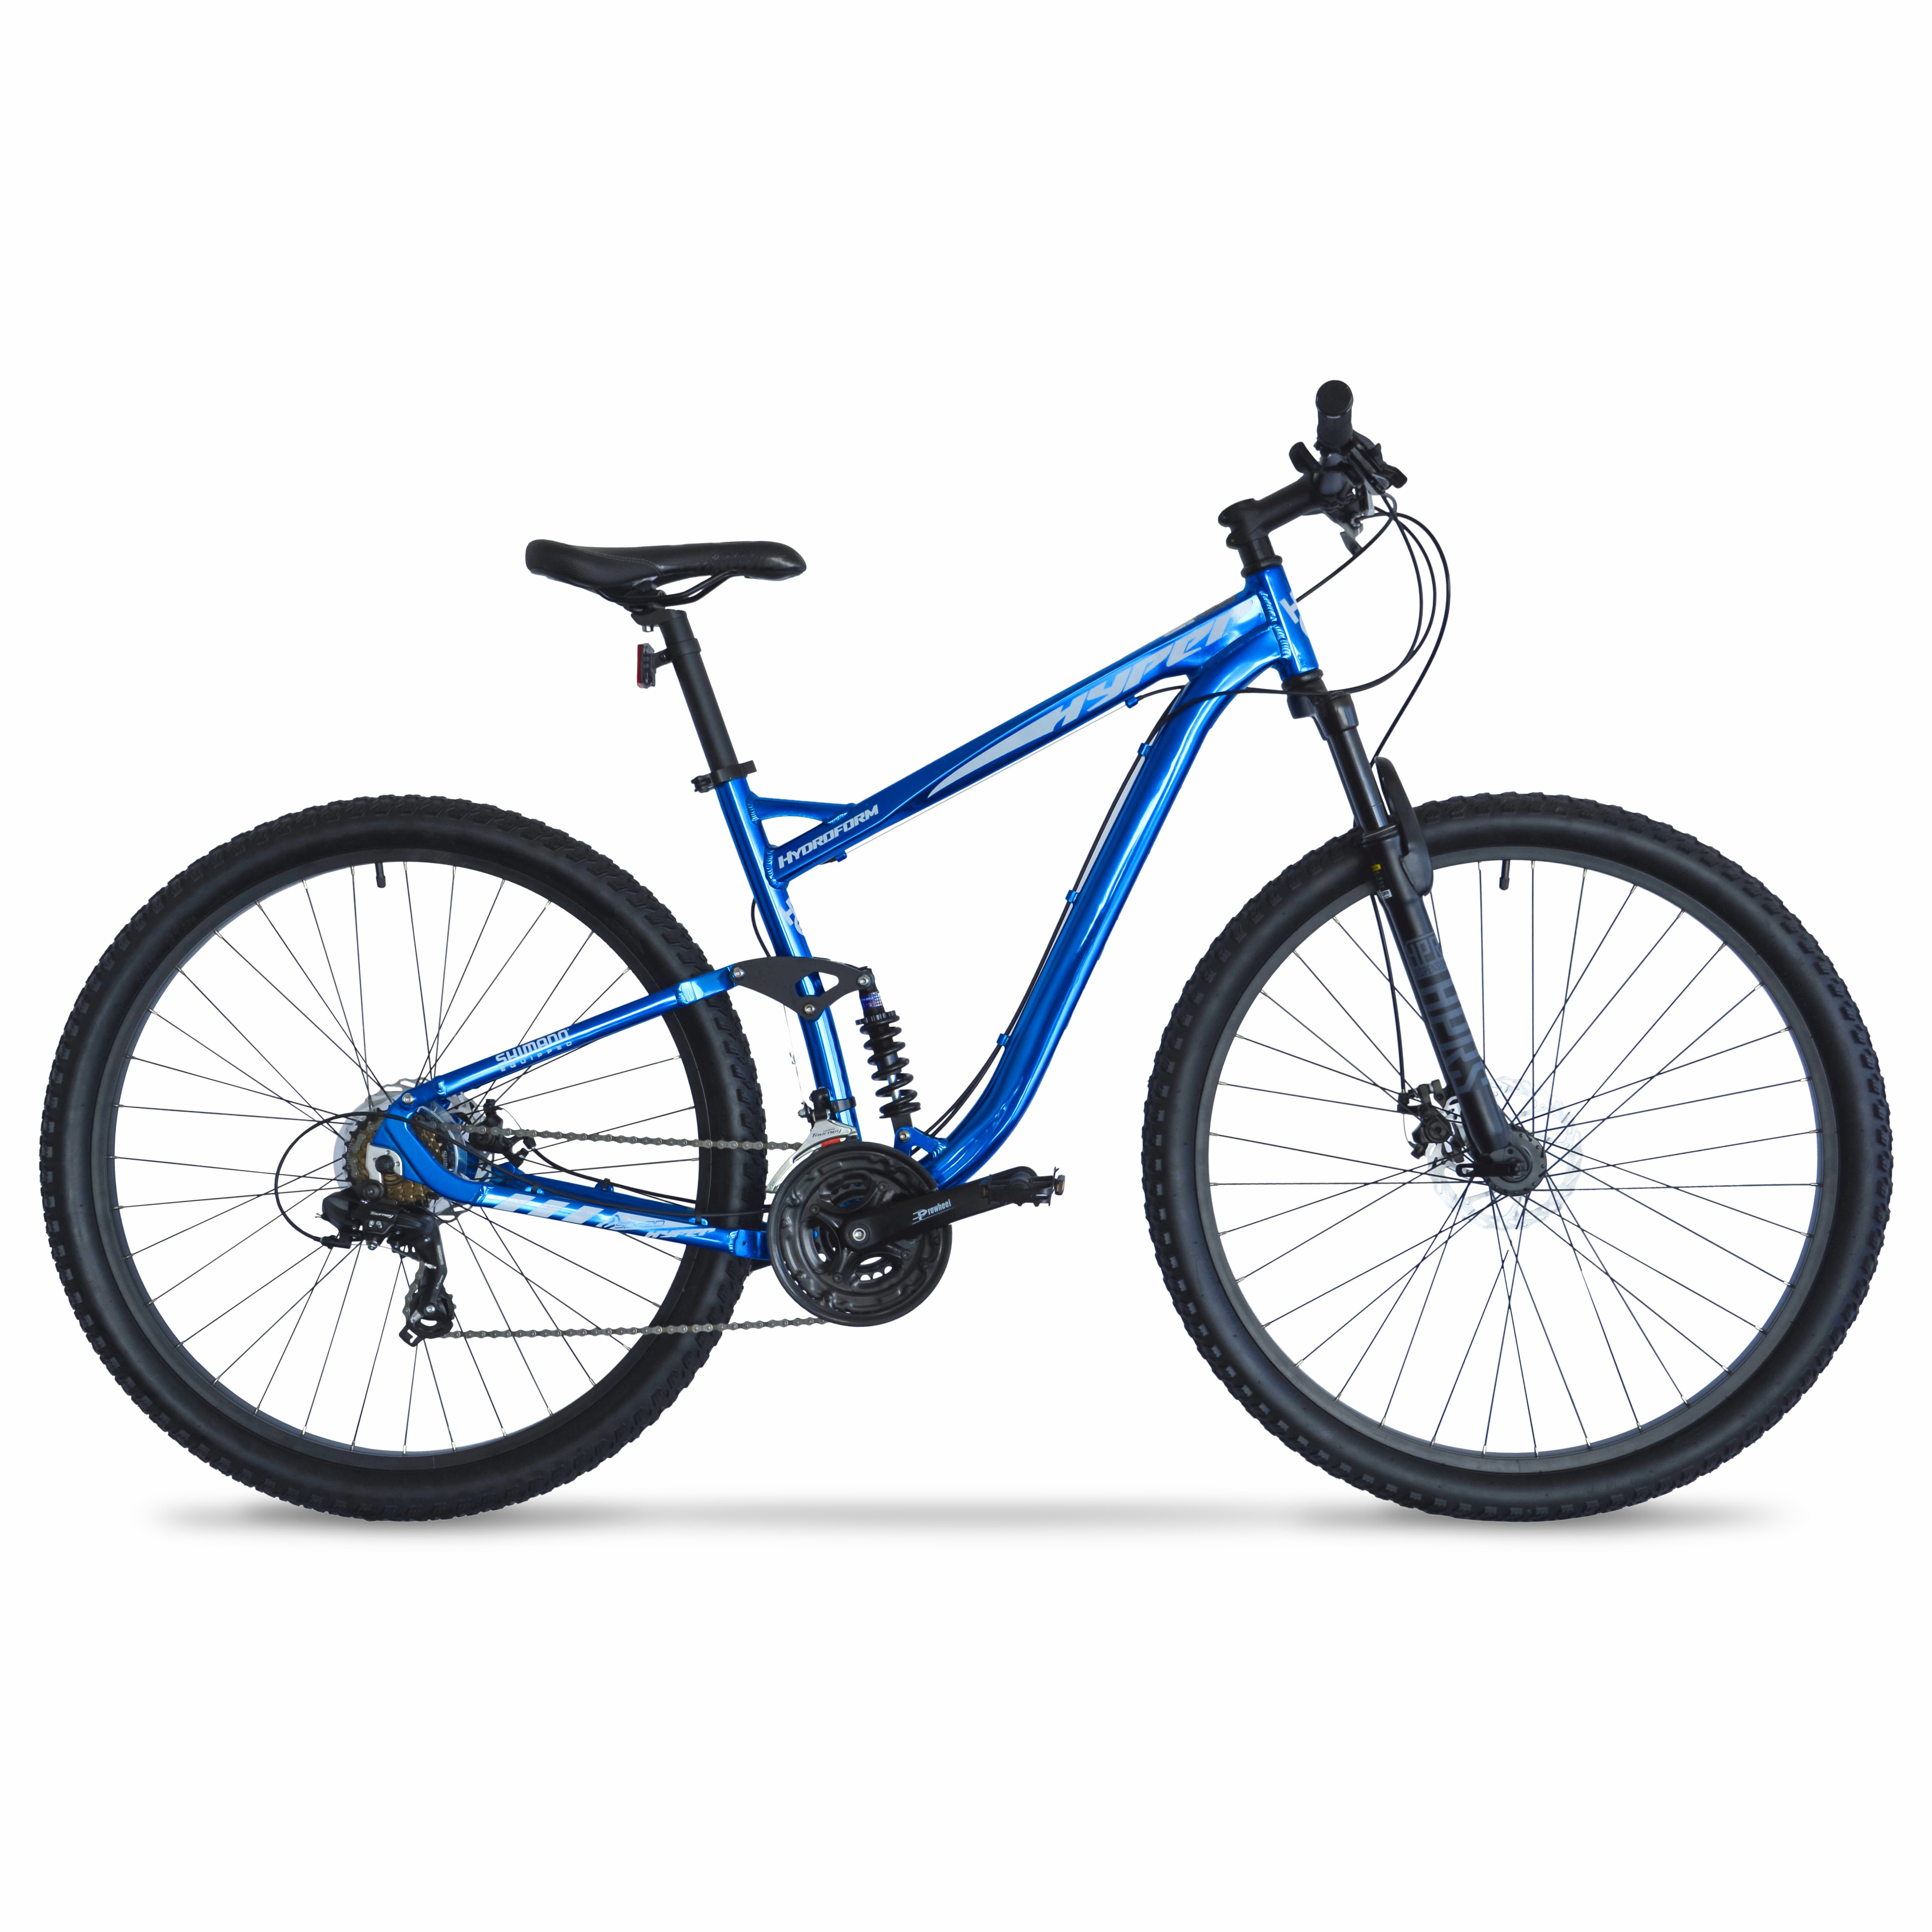 "Hyper 29"" Men's Ultra Lightweight Hydro-Form Aluminum Mountain Bike"